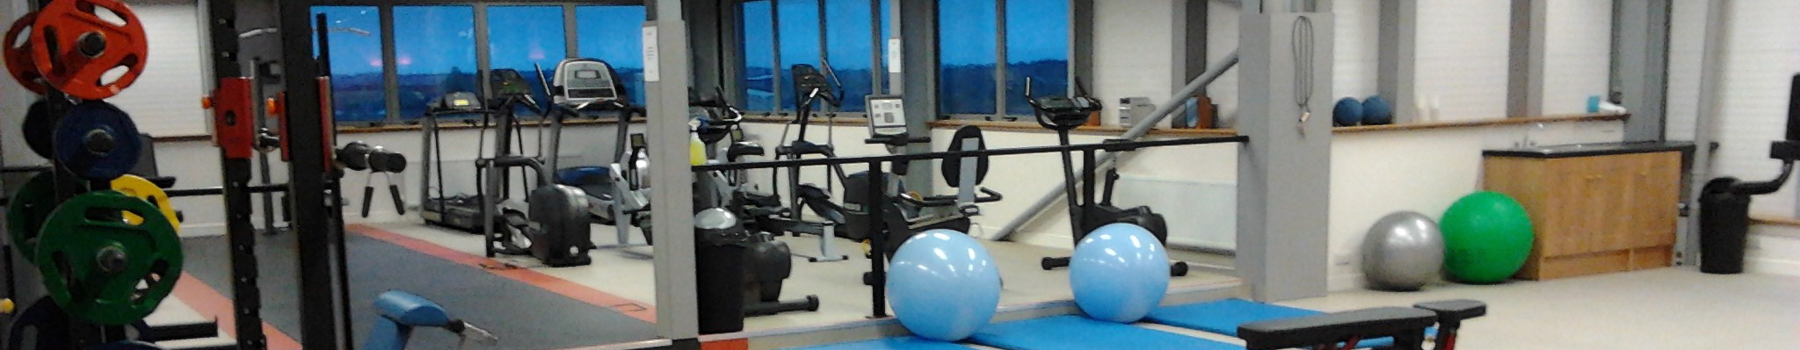 Gym Fitness Center And Boutique Business Valuations For